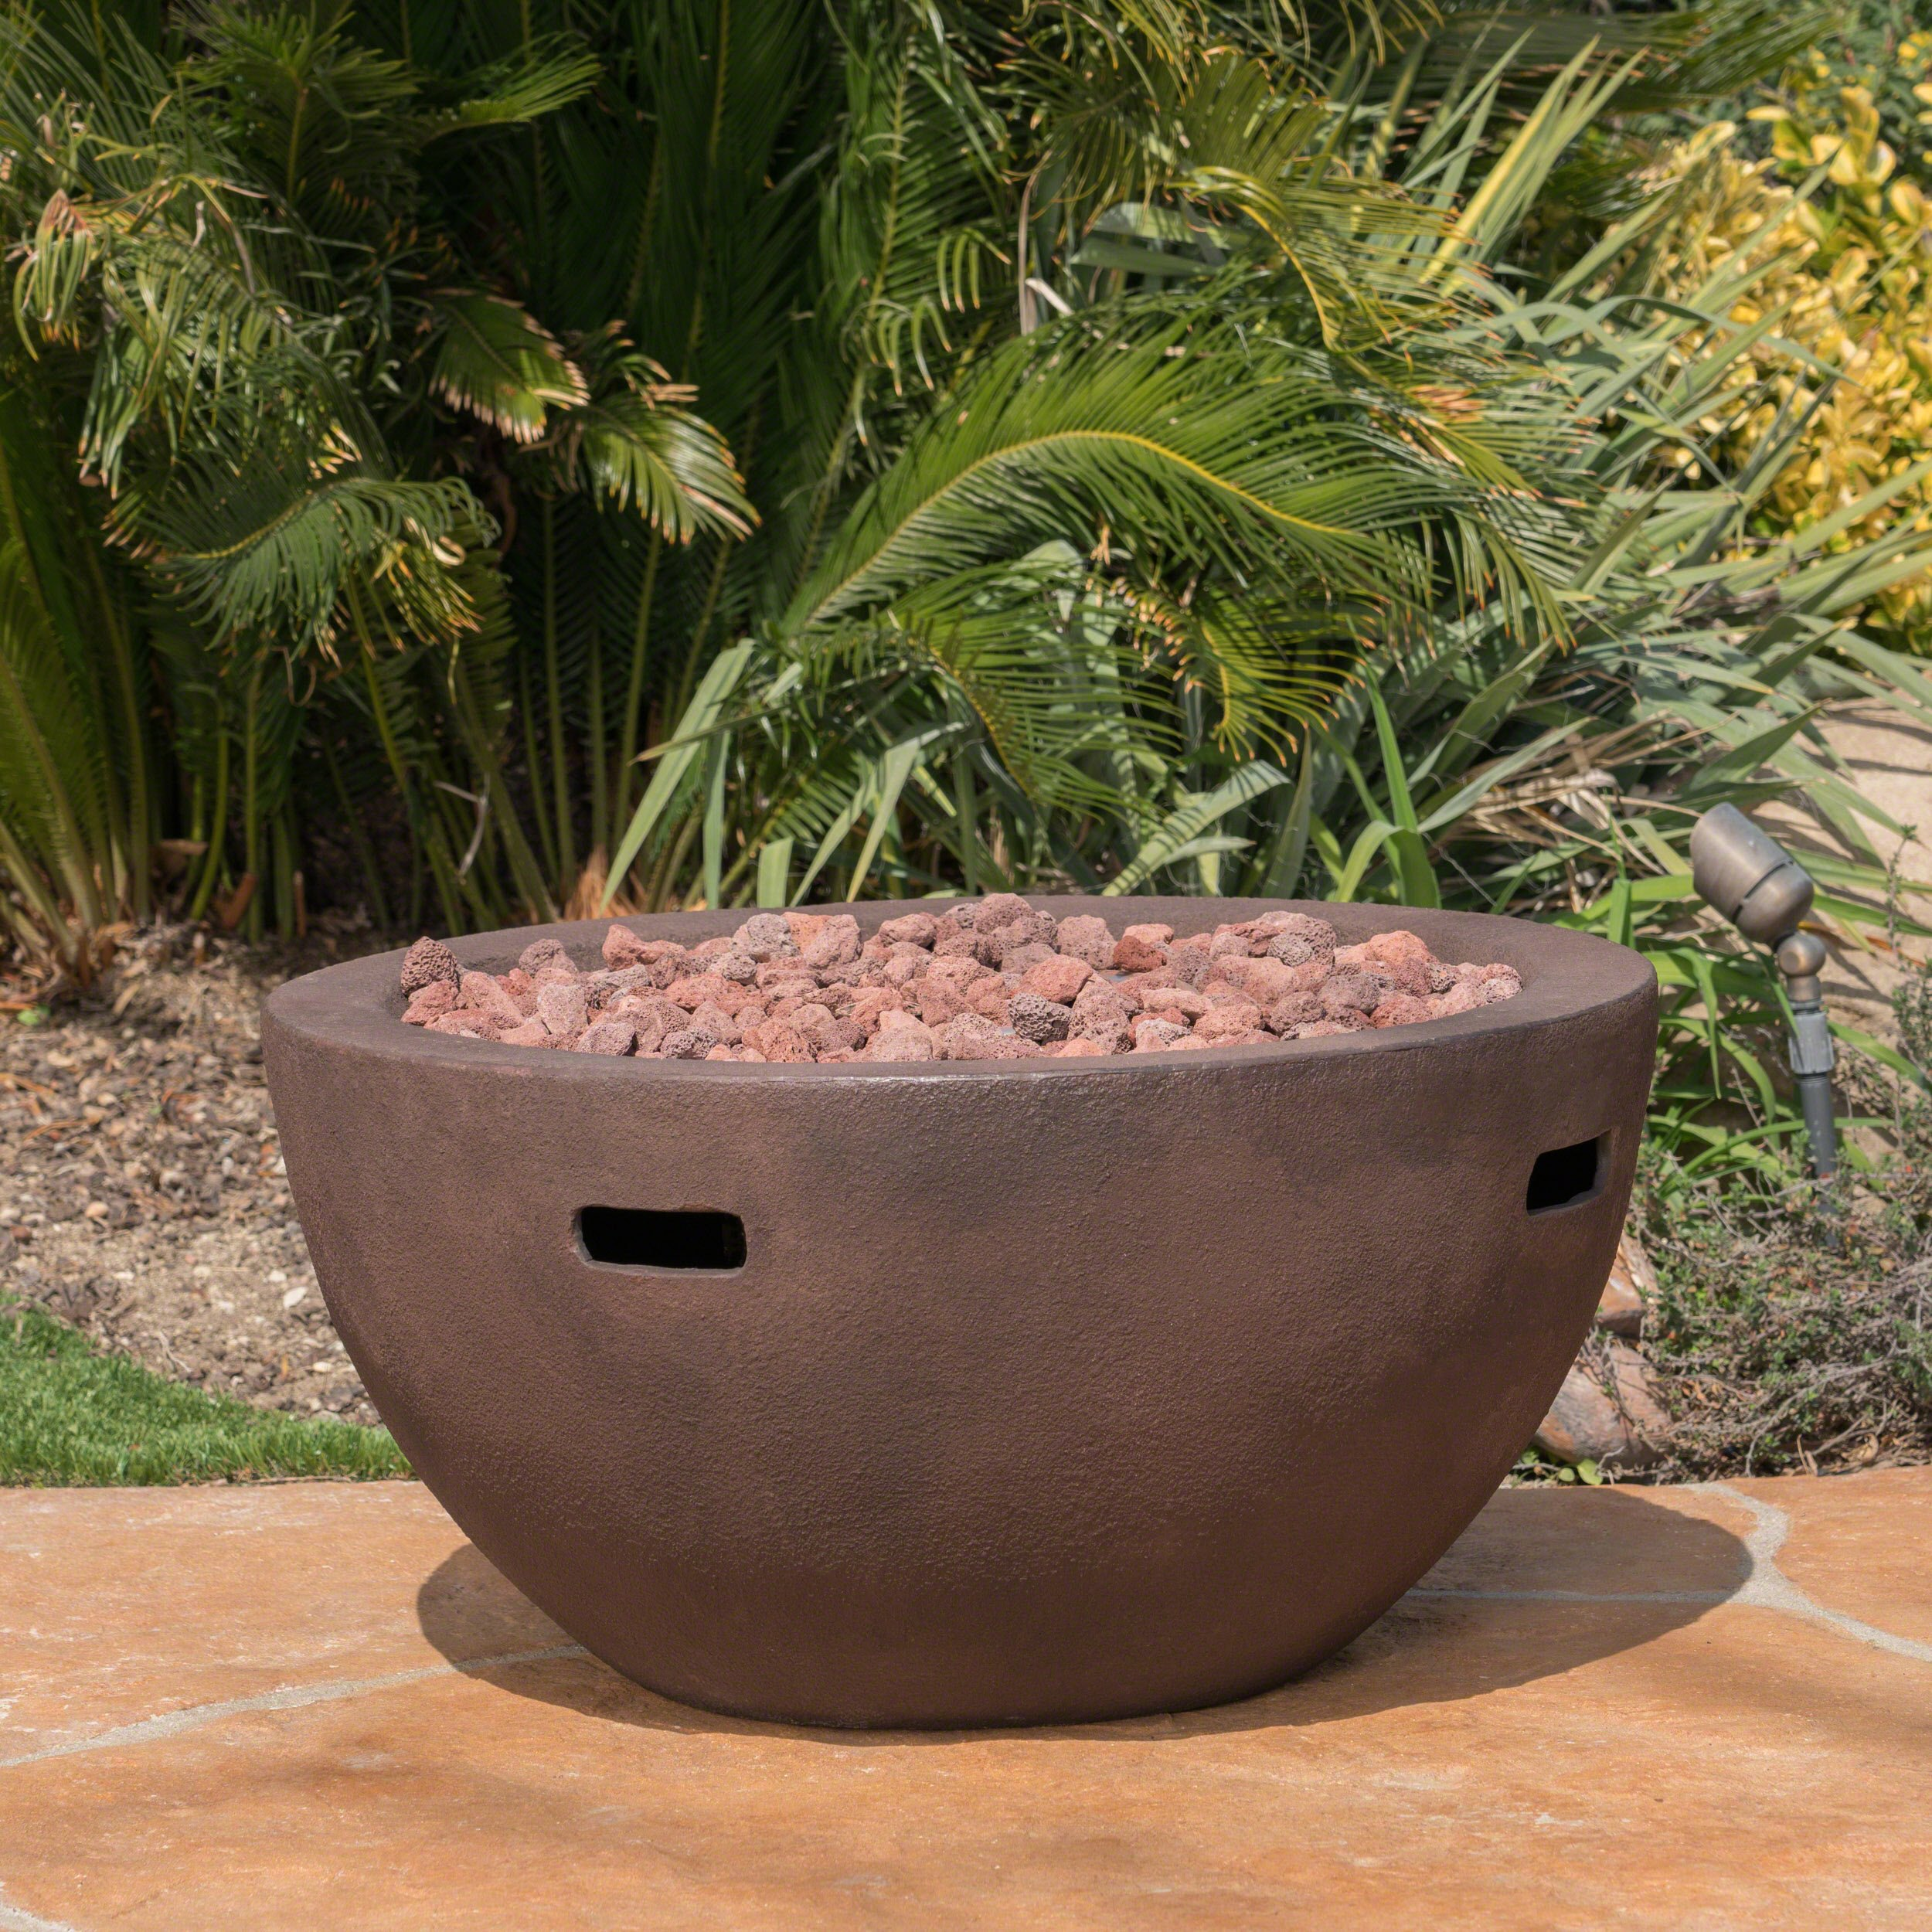 Great Deal Furniture Teresa Outdoor 34 Inch Brown Finish Light Weight Concrete Bowl Fire Pit - 40,000 BTU by Great Deal Furniture